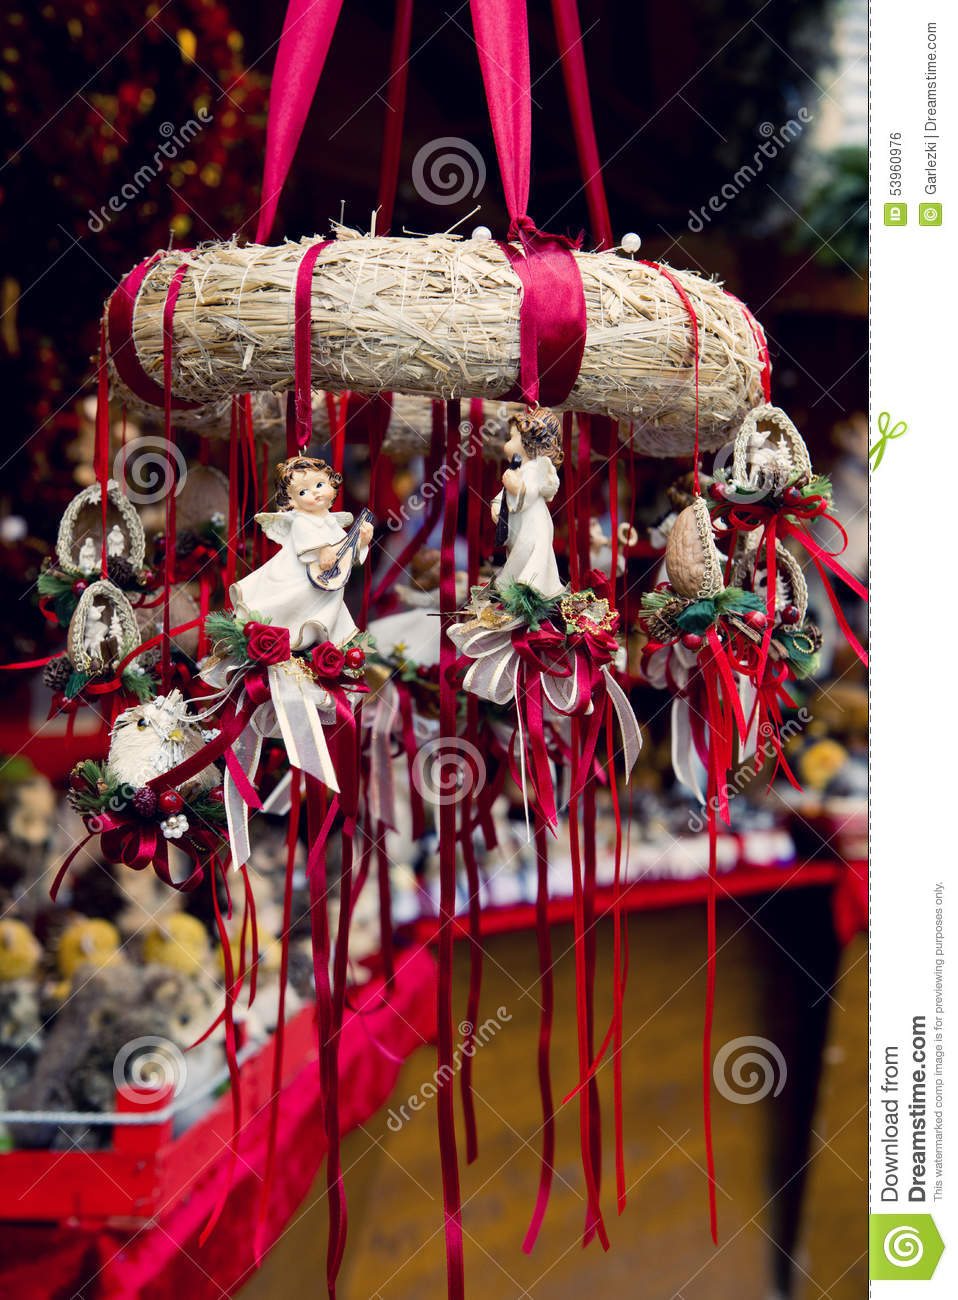 Traditional german christmas decorations - Traditional German Christmas Decorations Stock Photo